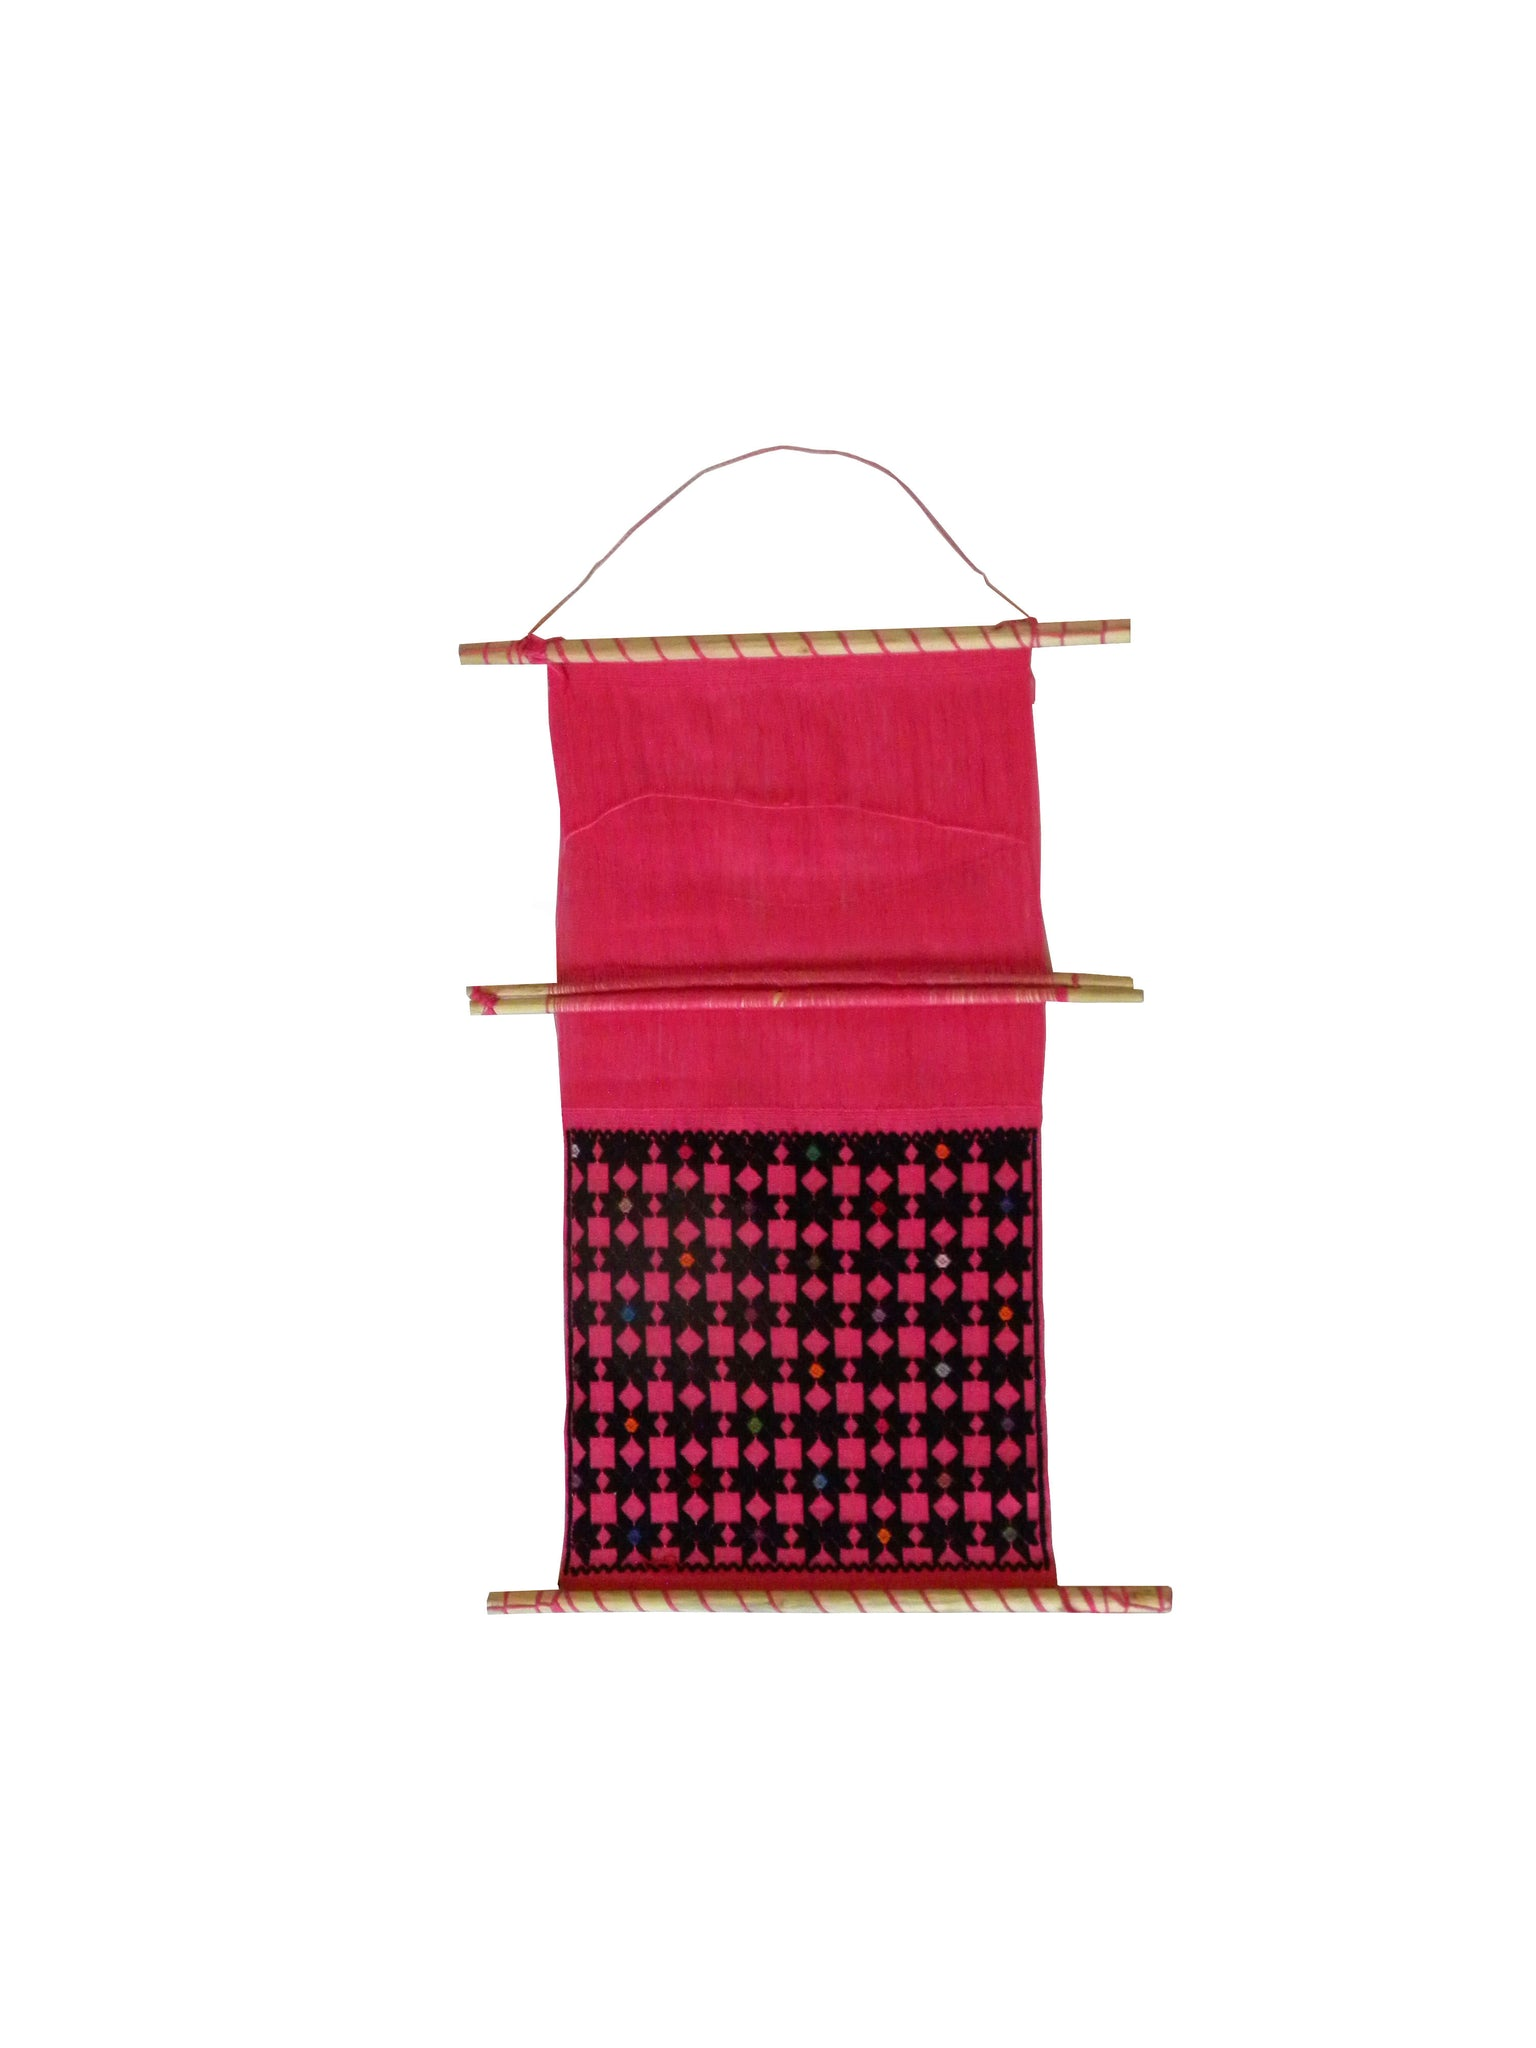 Telar Decorativo / Decorative Loom